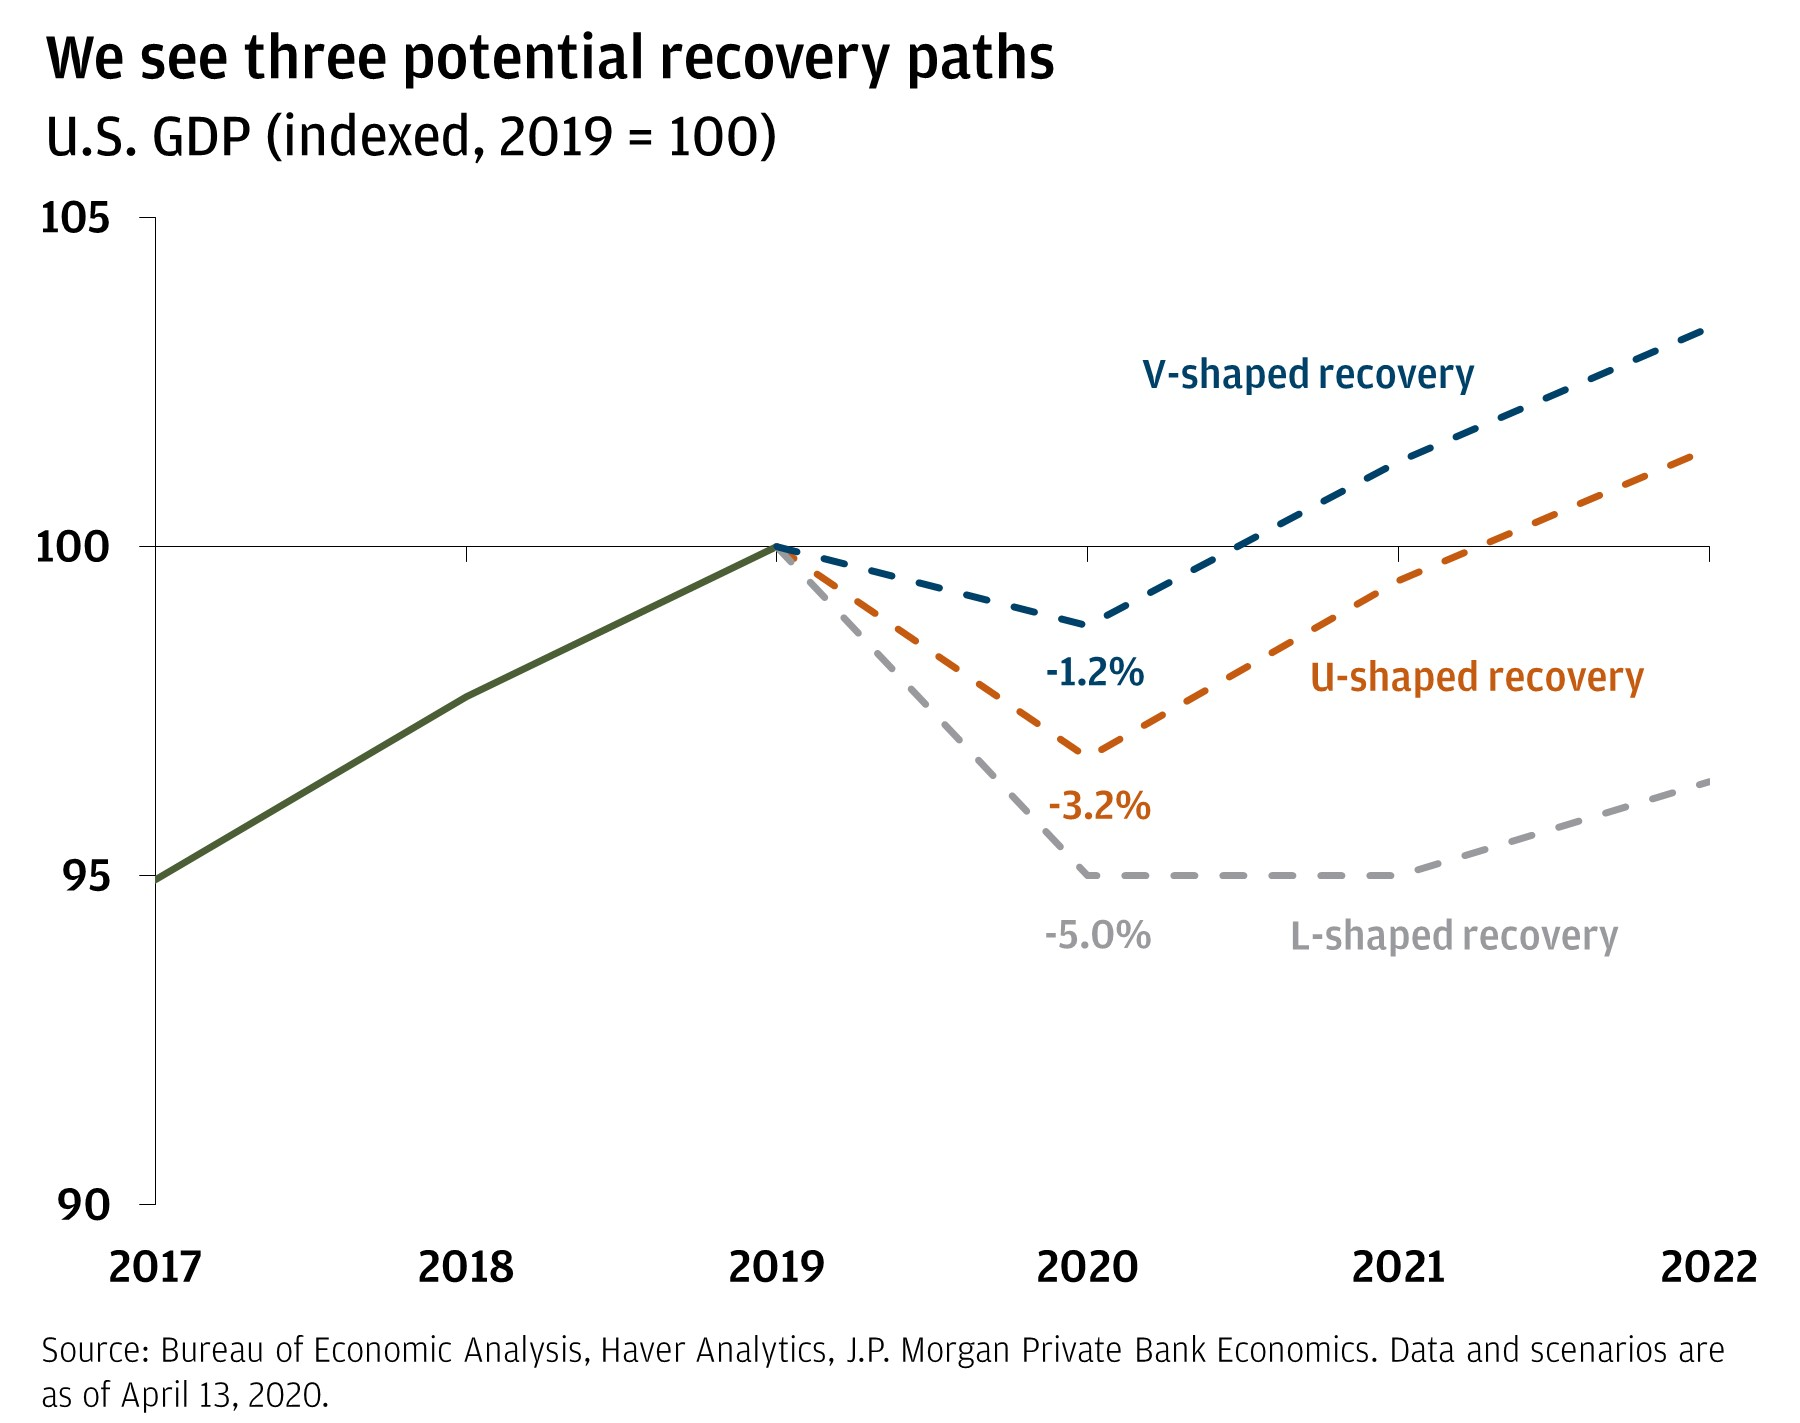 The chart shows GDP from 2019 projected through 2022 with GDP in 2019 set at 100. It shows three potential options for recovery (L, U, and V) and how each option would impact projected GDP.